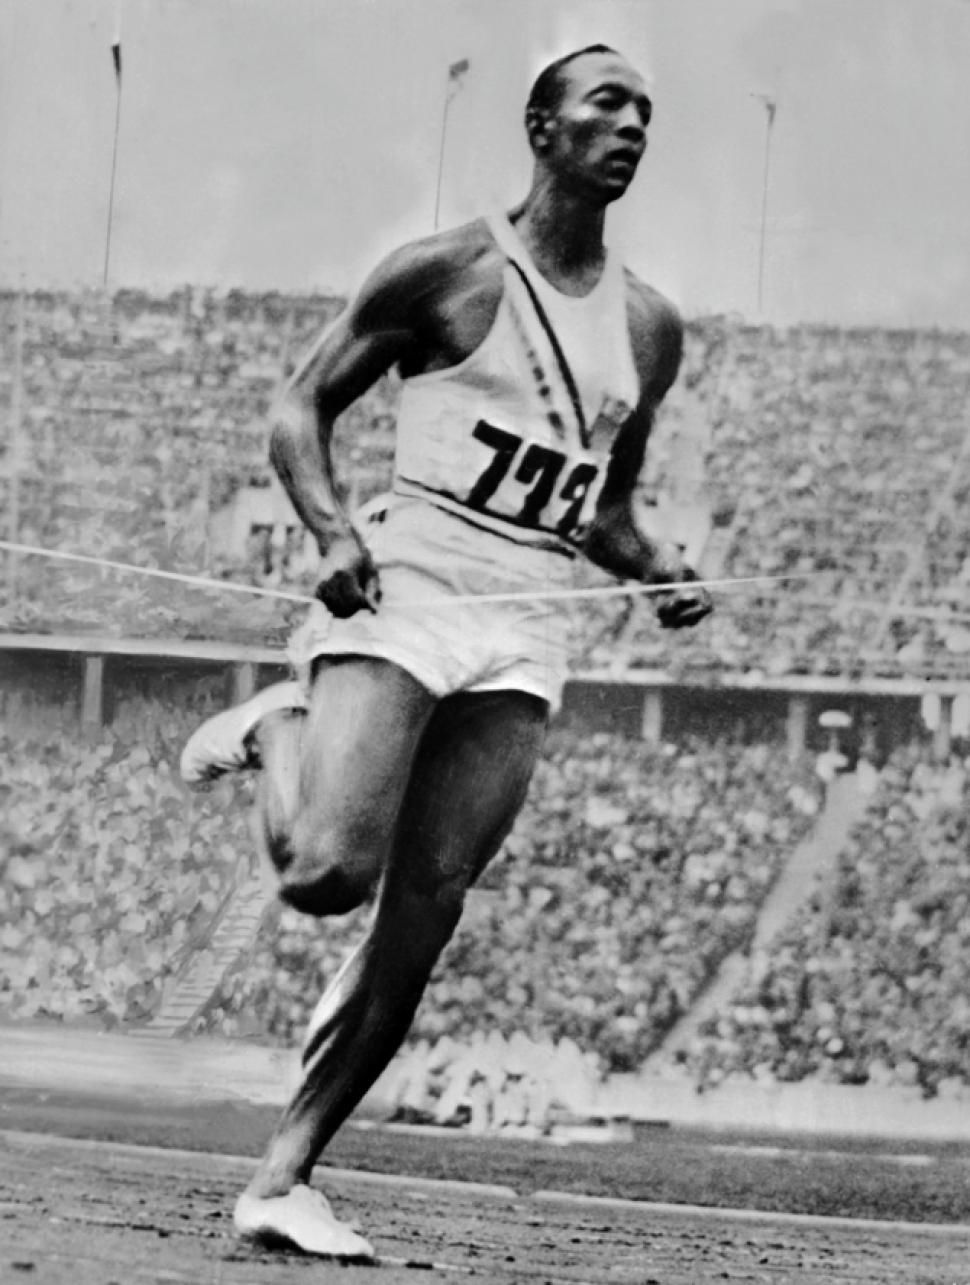 jesse owens essay th owens wins th gold medal at the berlin  th owens wins th gold medal at the berlin 9th 1936 owens wins 4th gold medal